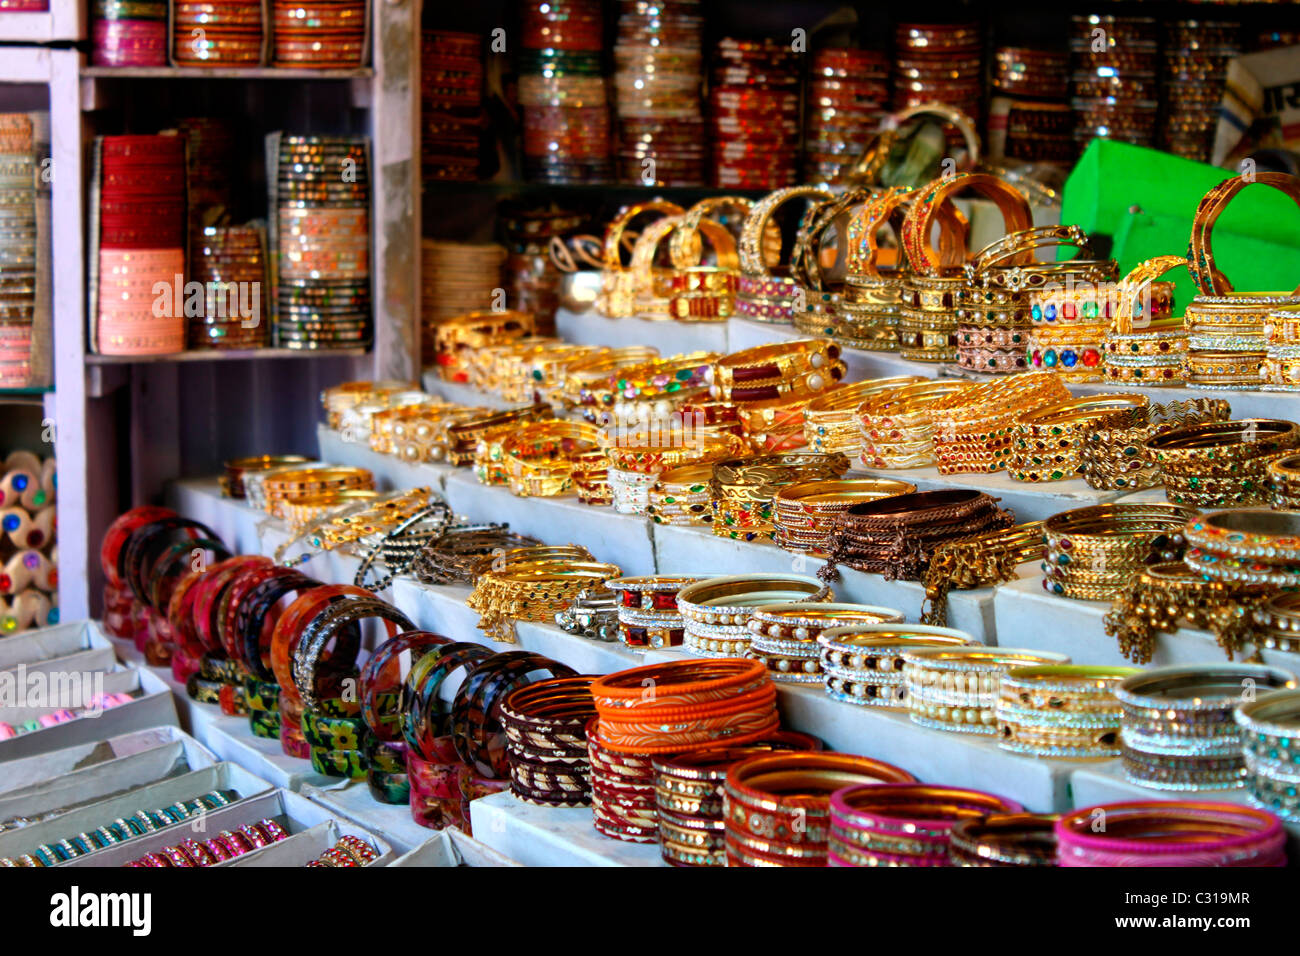 tour a market of bangle ray kolkata animesh emami shop in bangles shopping by photography